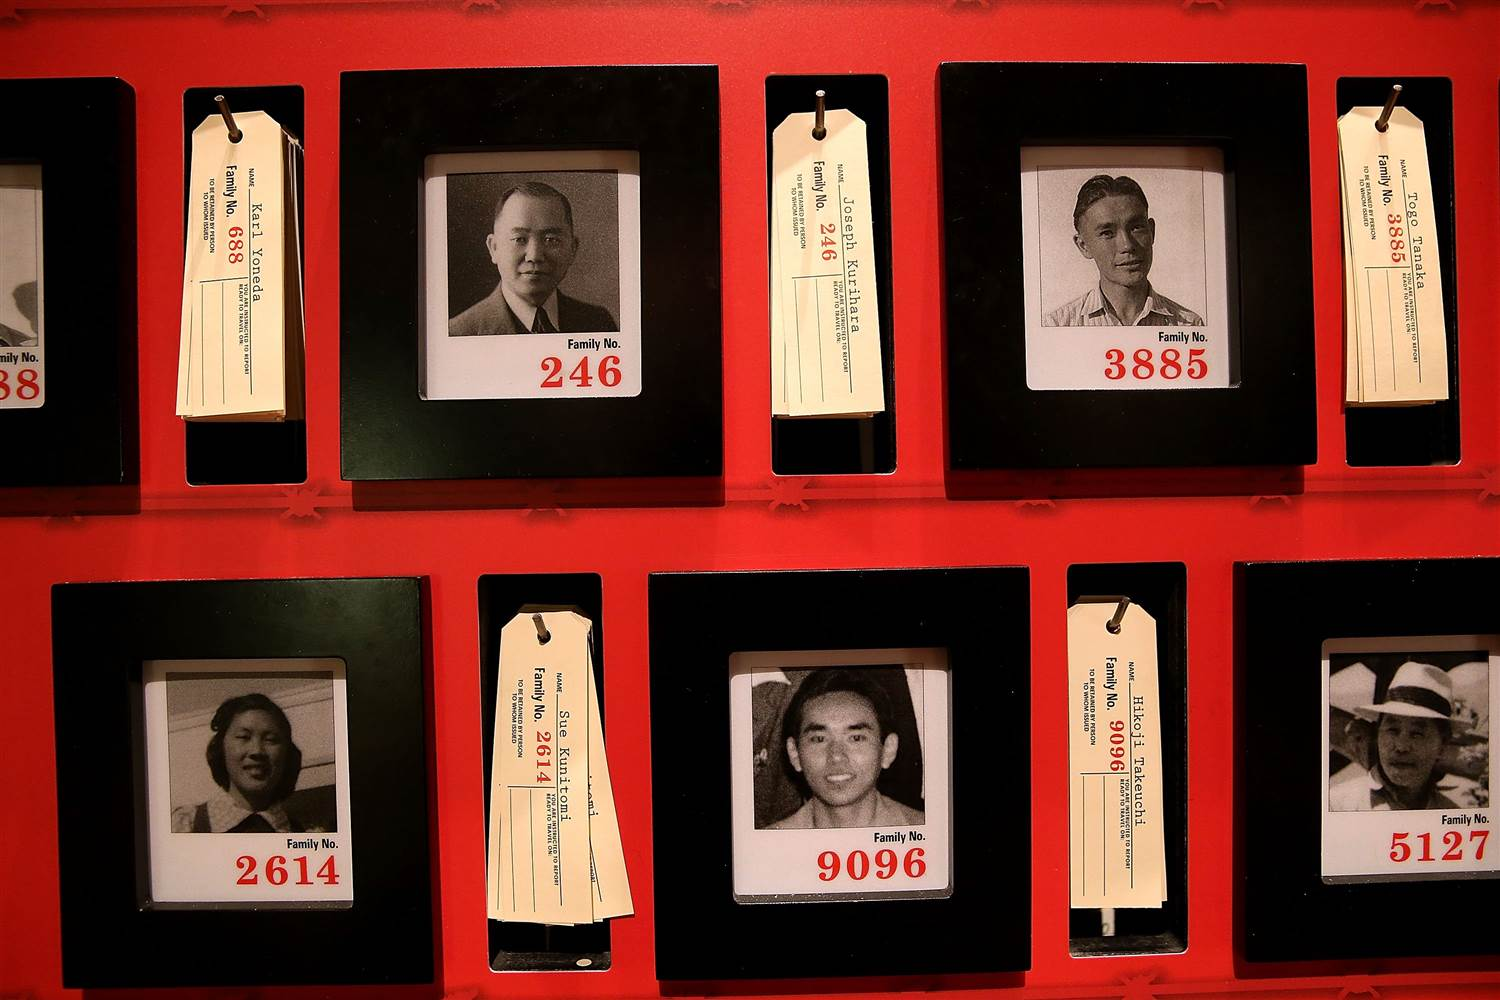 Pictures of people who were incarcerated at Manzanar War Relocation Center are displayed alongside family tags at Manzanar National Historic Site on December 9, 2015 near Independence, California. Justin Sullivan / Getty Images